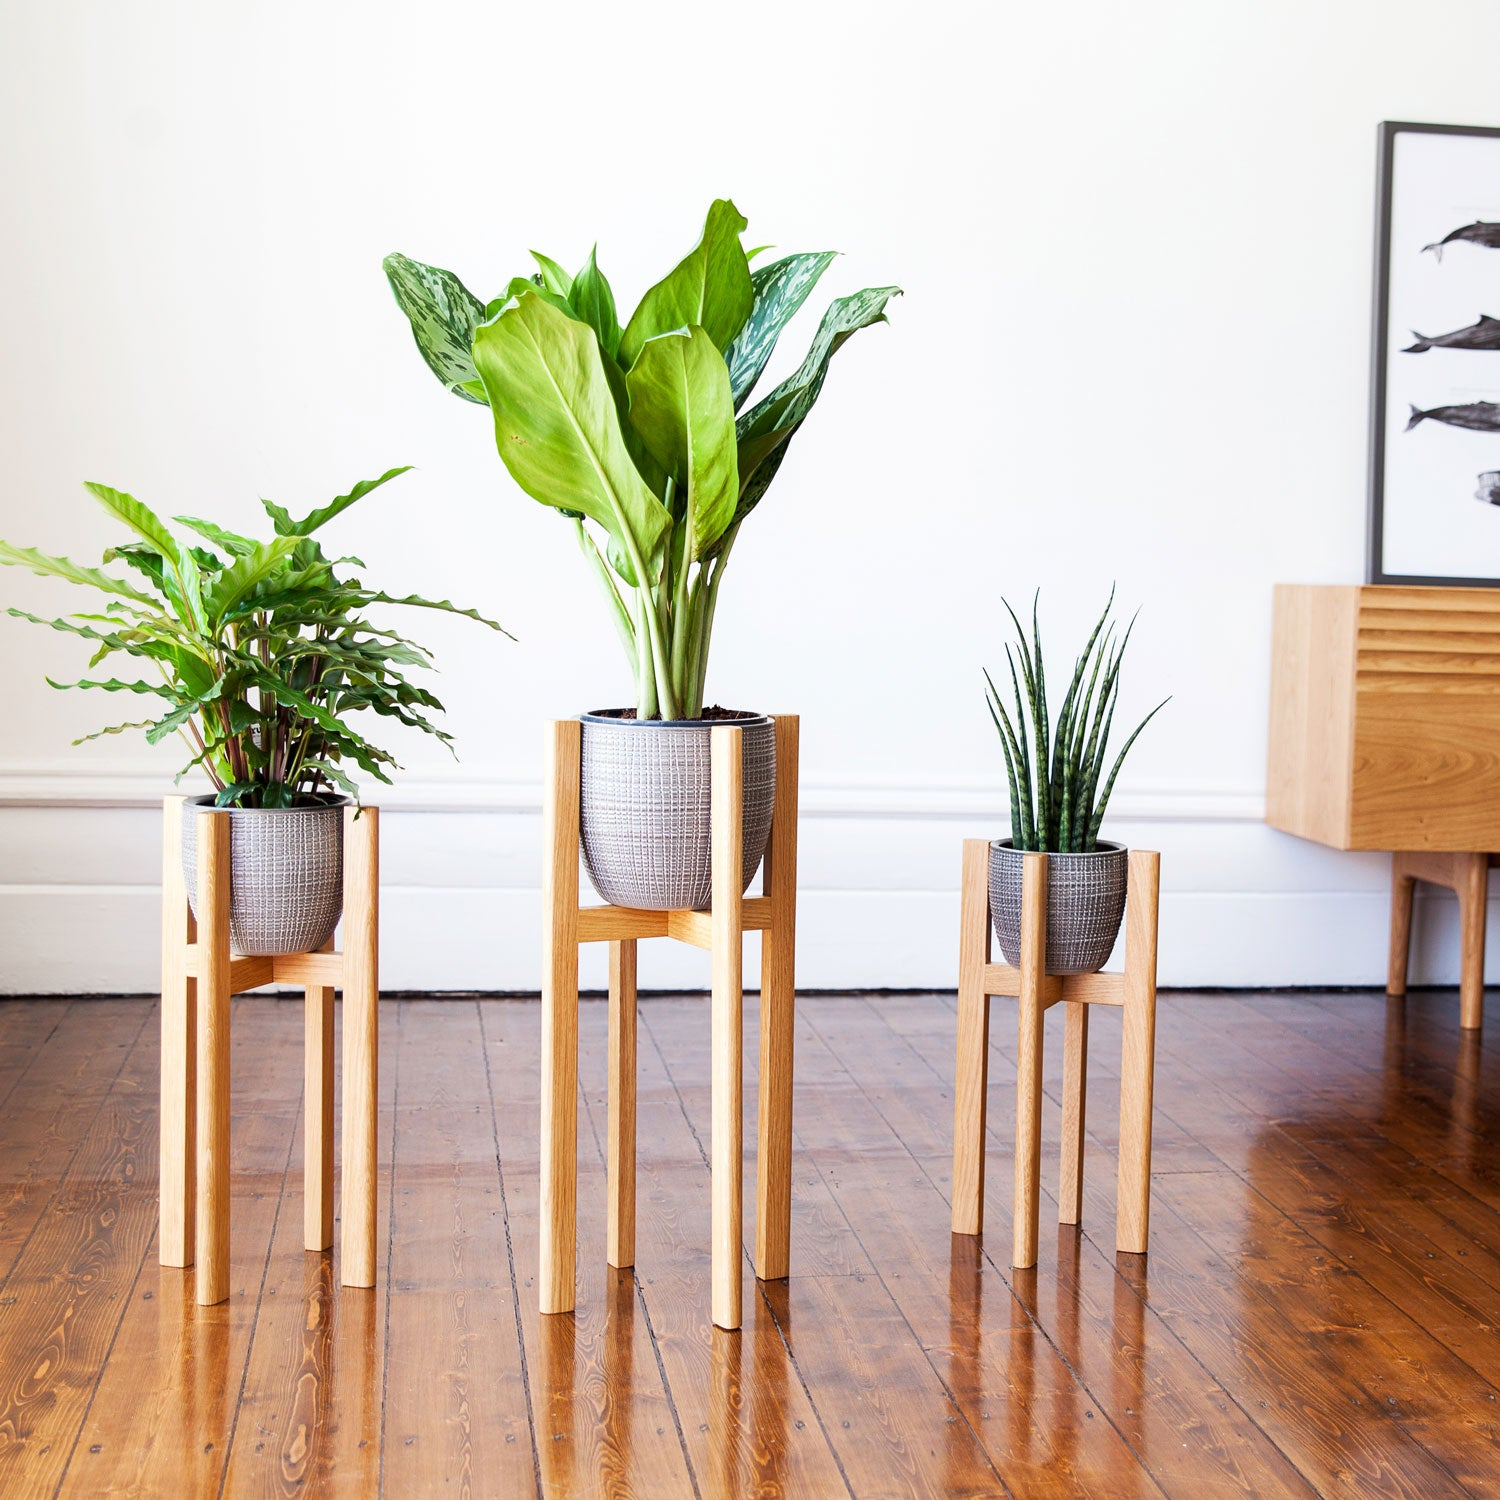 Mid Century Style Modern Plant Stands In 3 Sizes Nick James Design